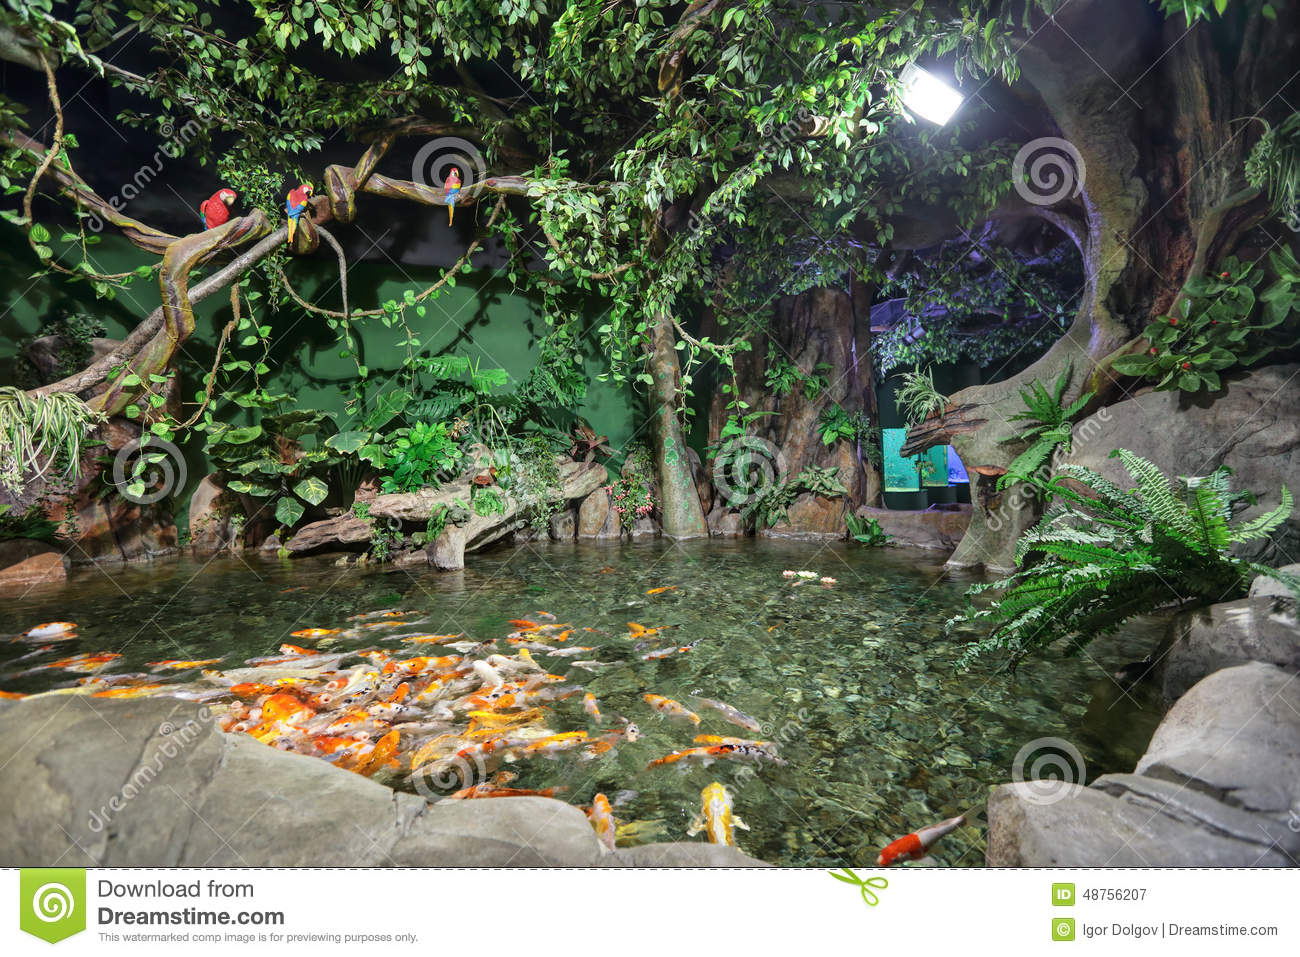 Adler Russia  City pictures : ... adler russia mar one main attractions adler largest russia koi